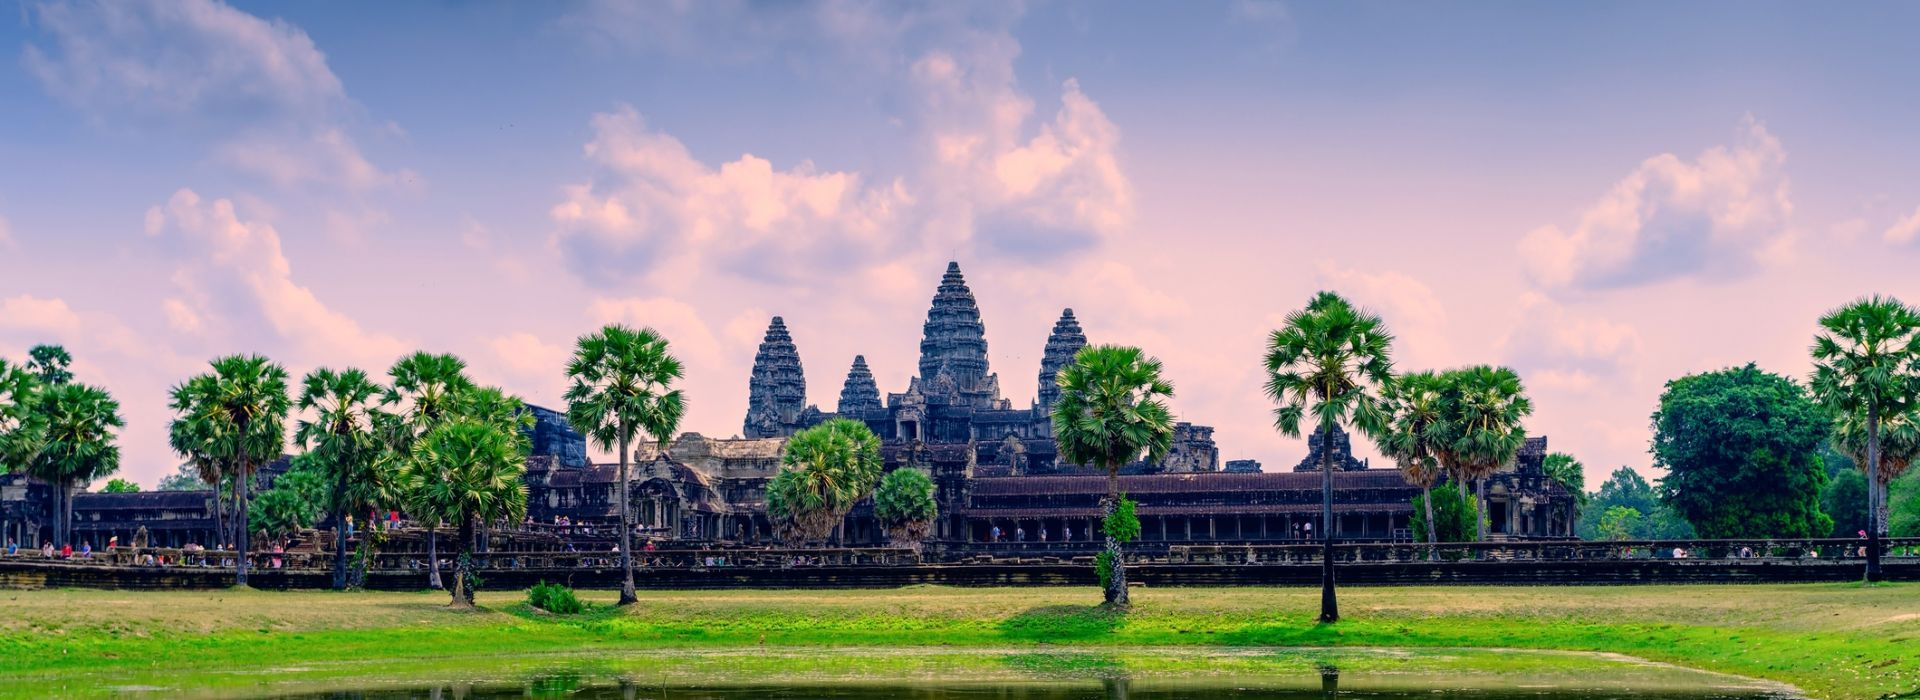 Sightseeing Tours in Cambodia